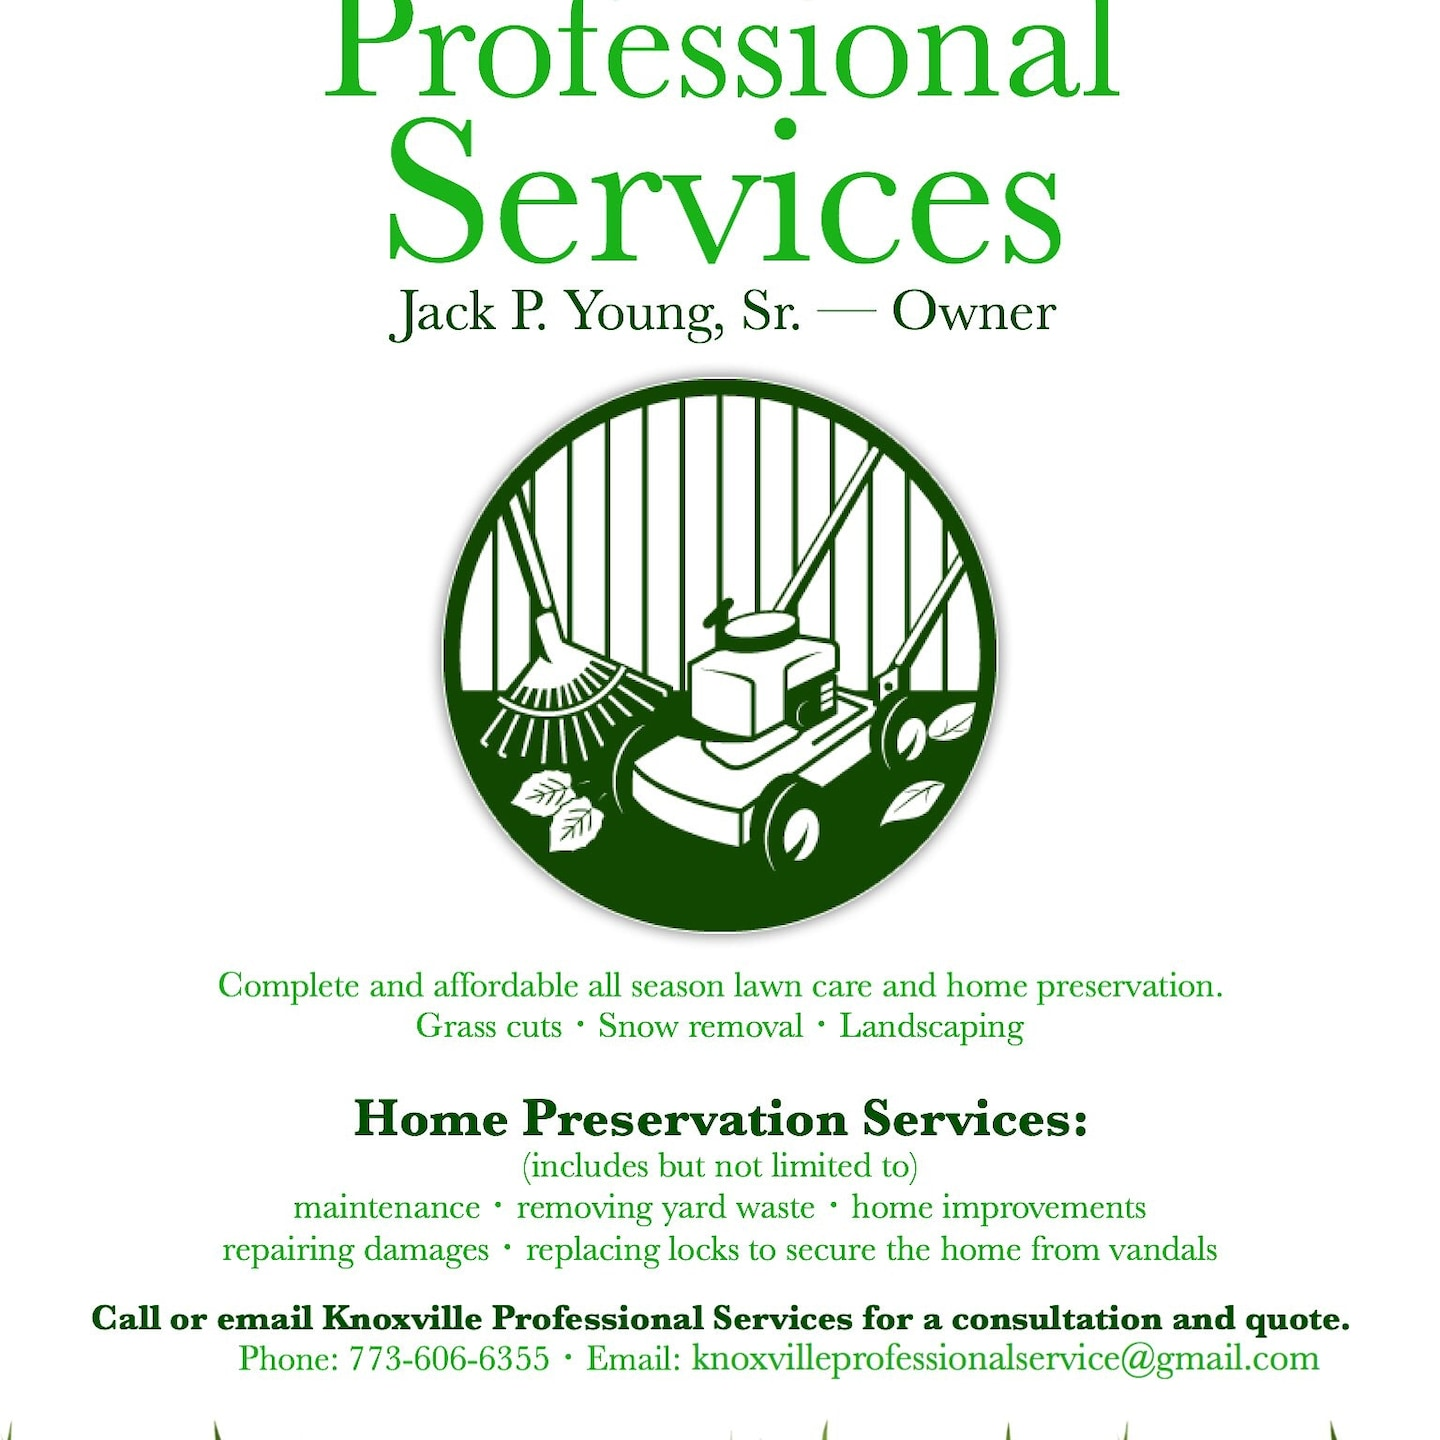 Knoxville Professional Services